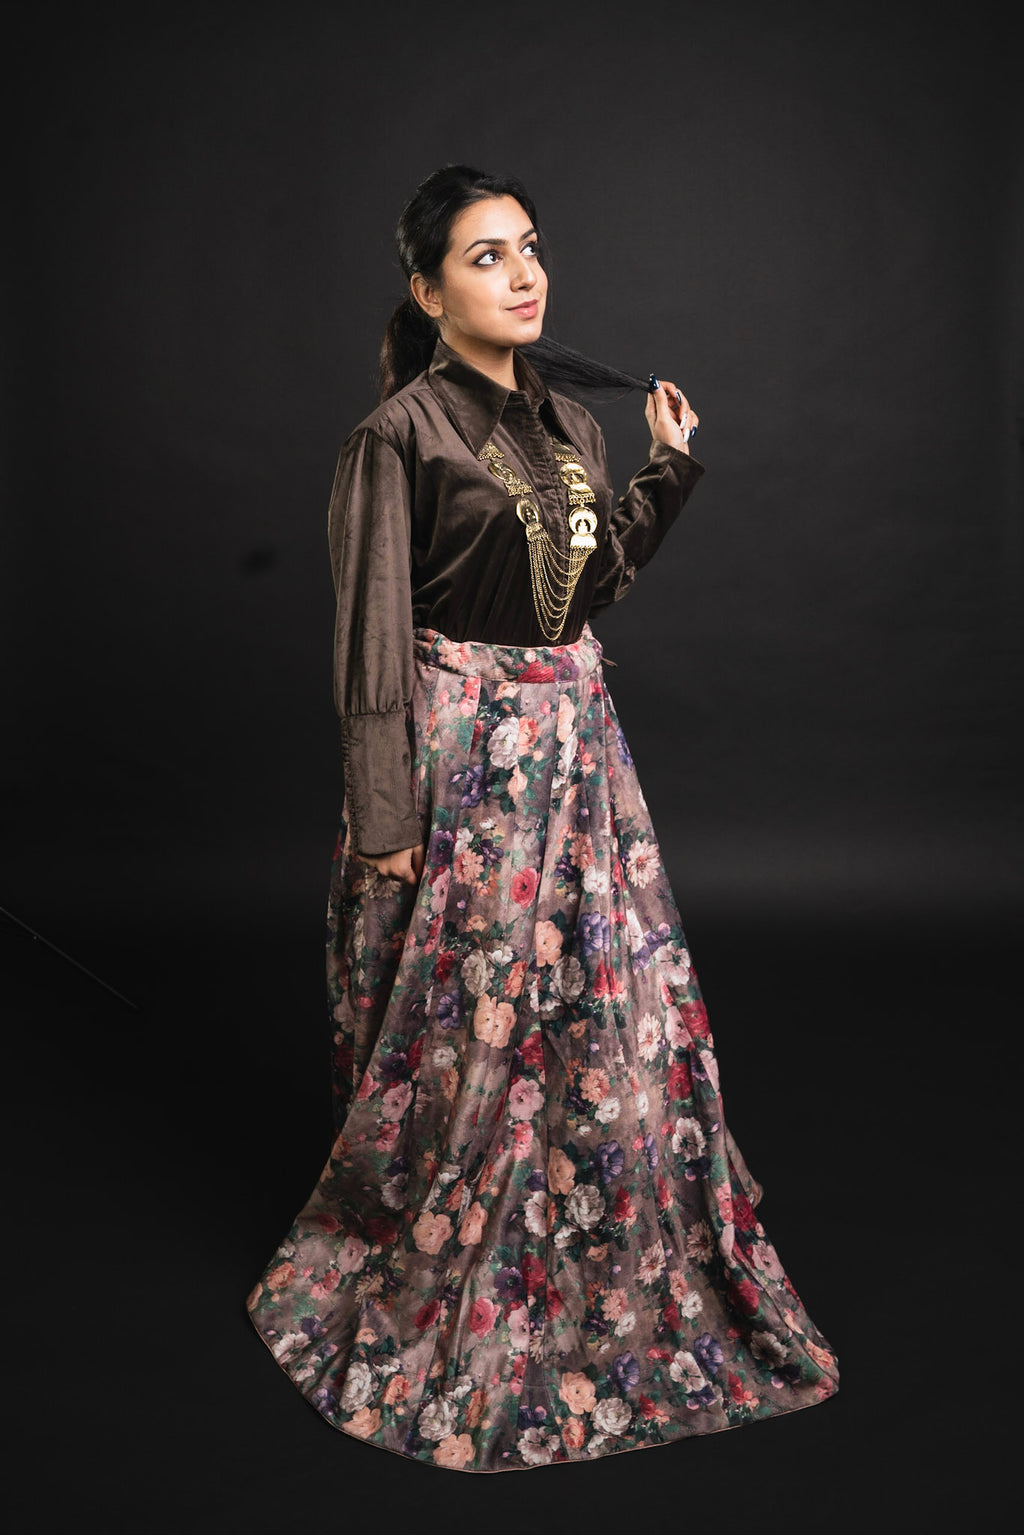 Brown Silk Floral Velvet Shirt and Skirt